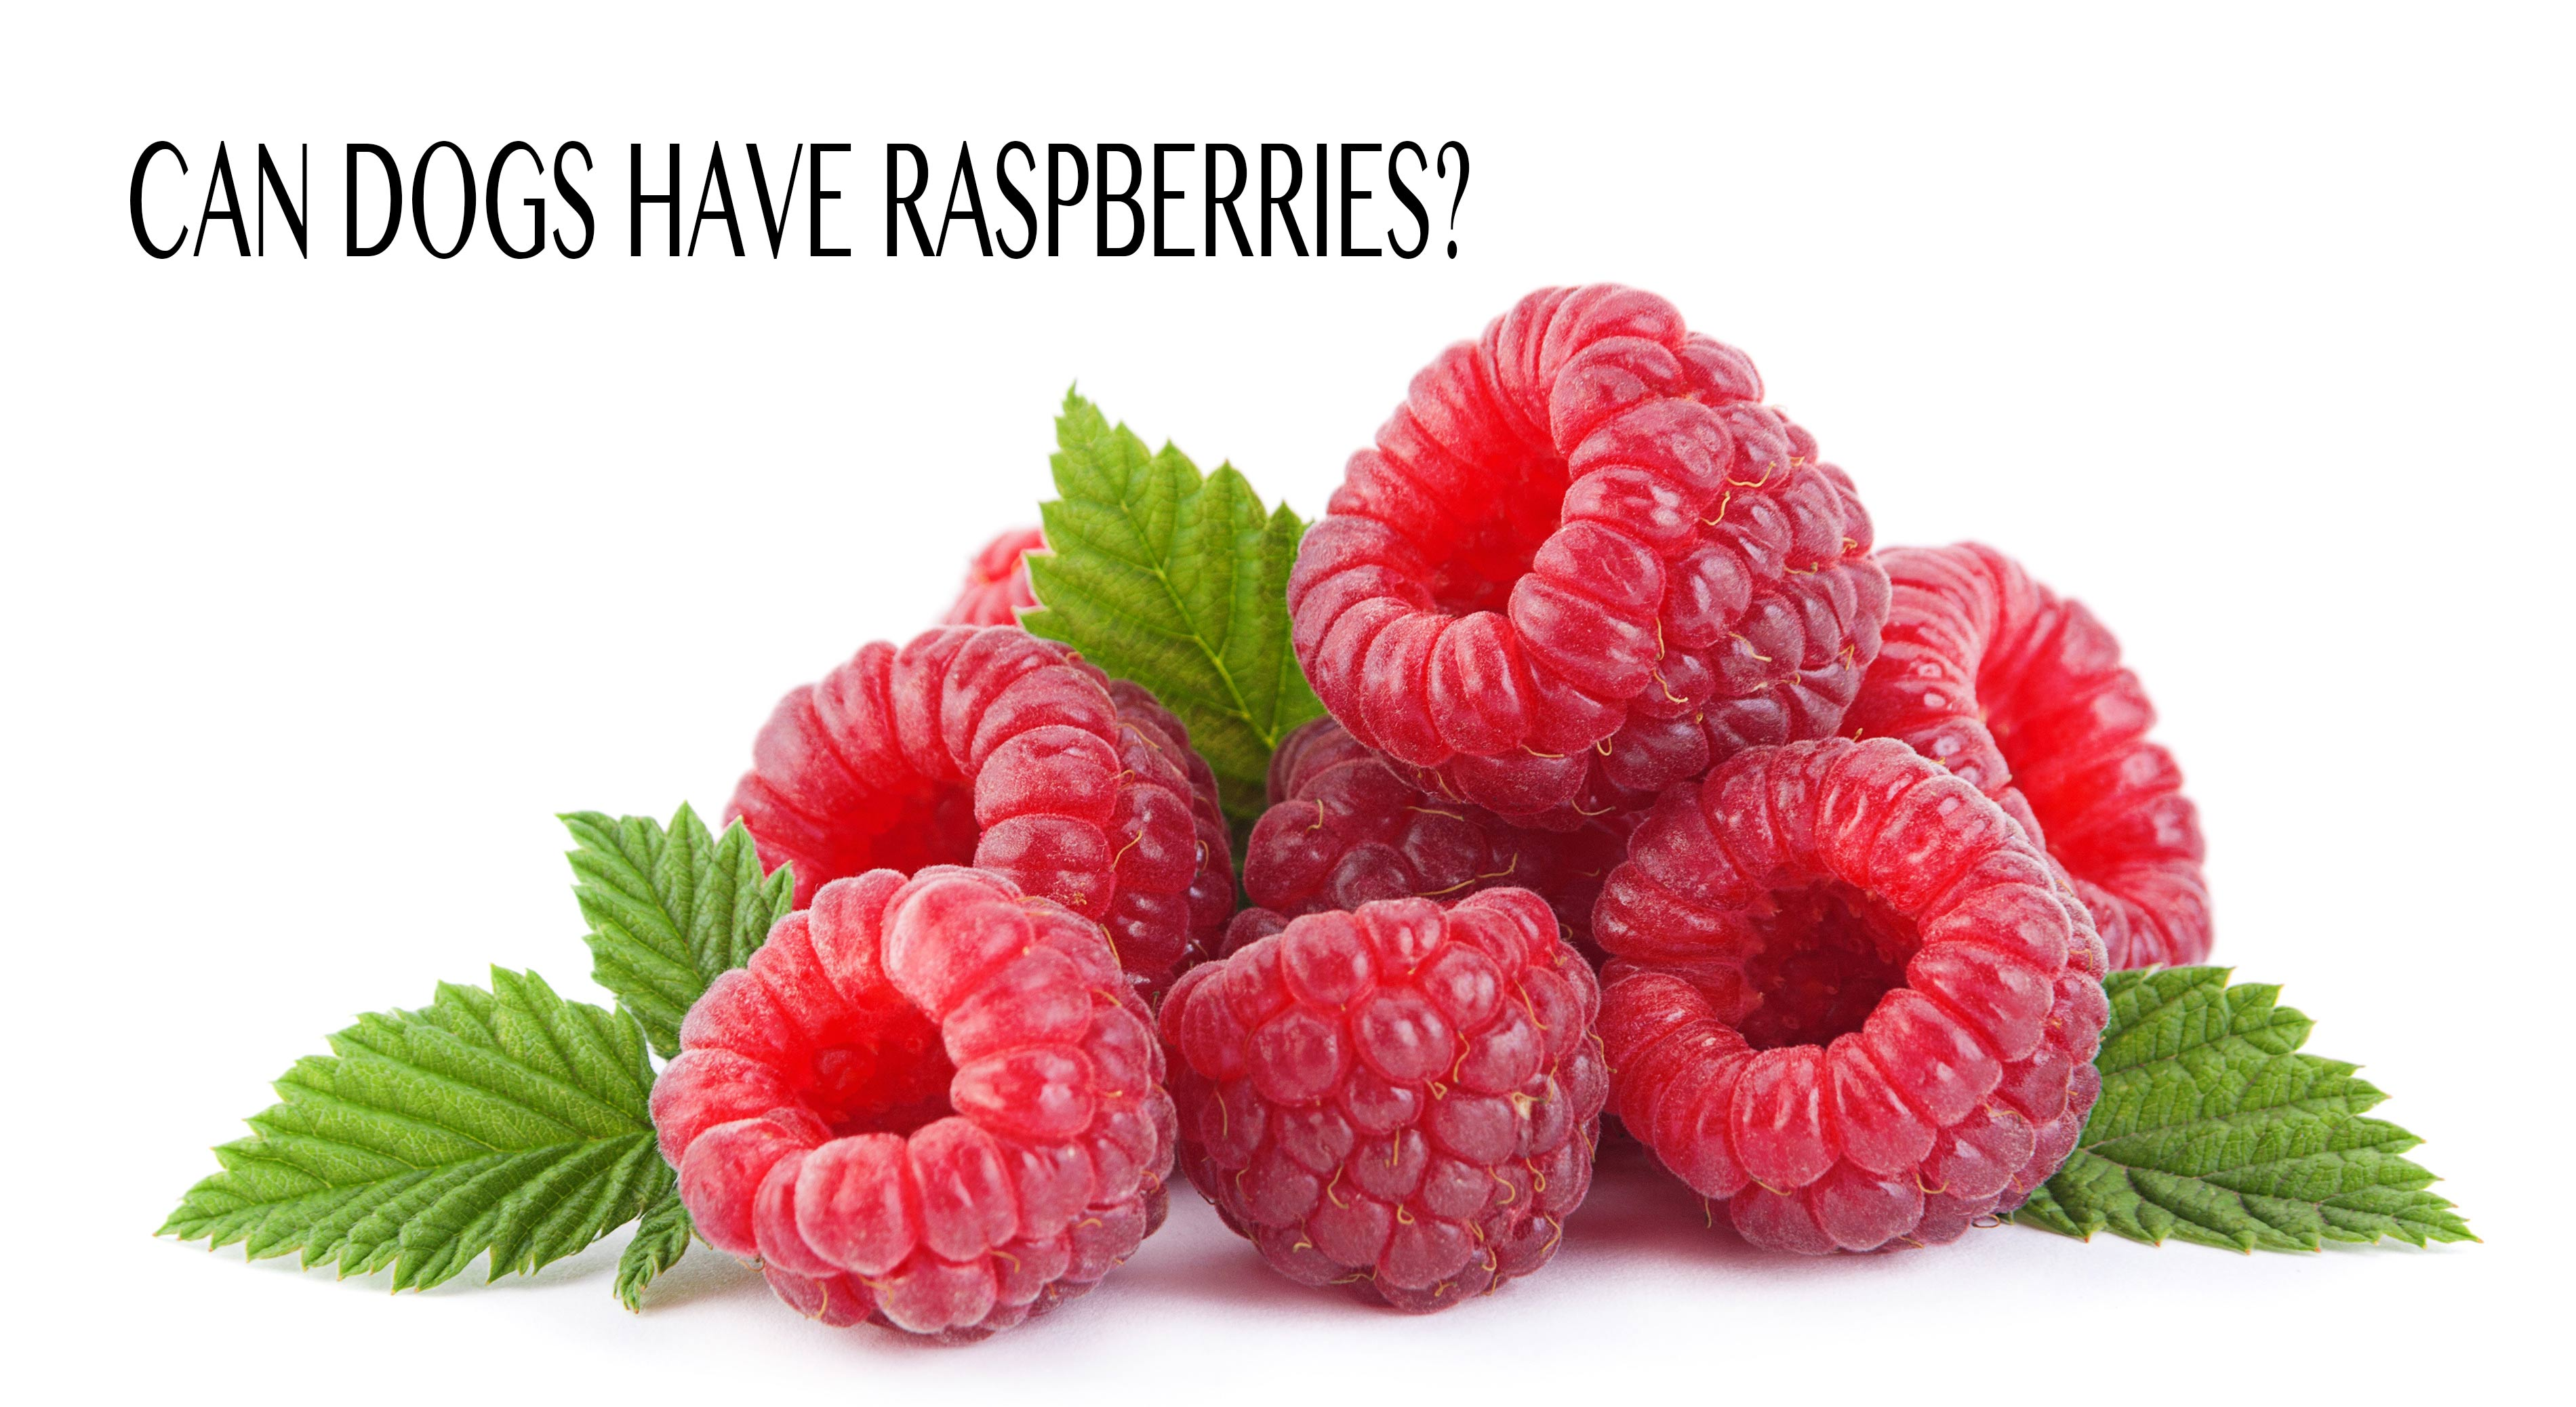 A pile of beautiful raspberries but can dogs have raspberries and are they safe?